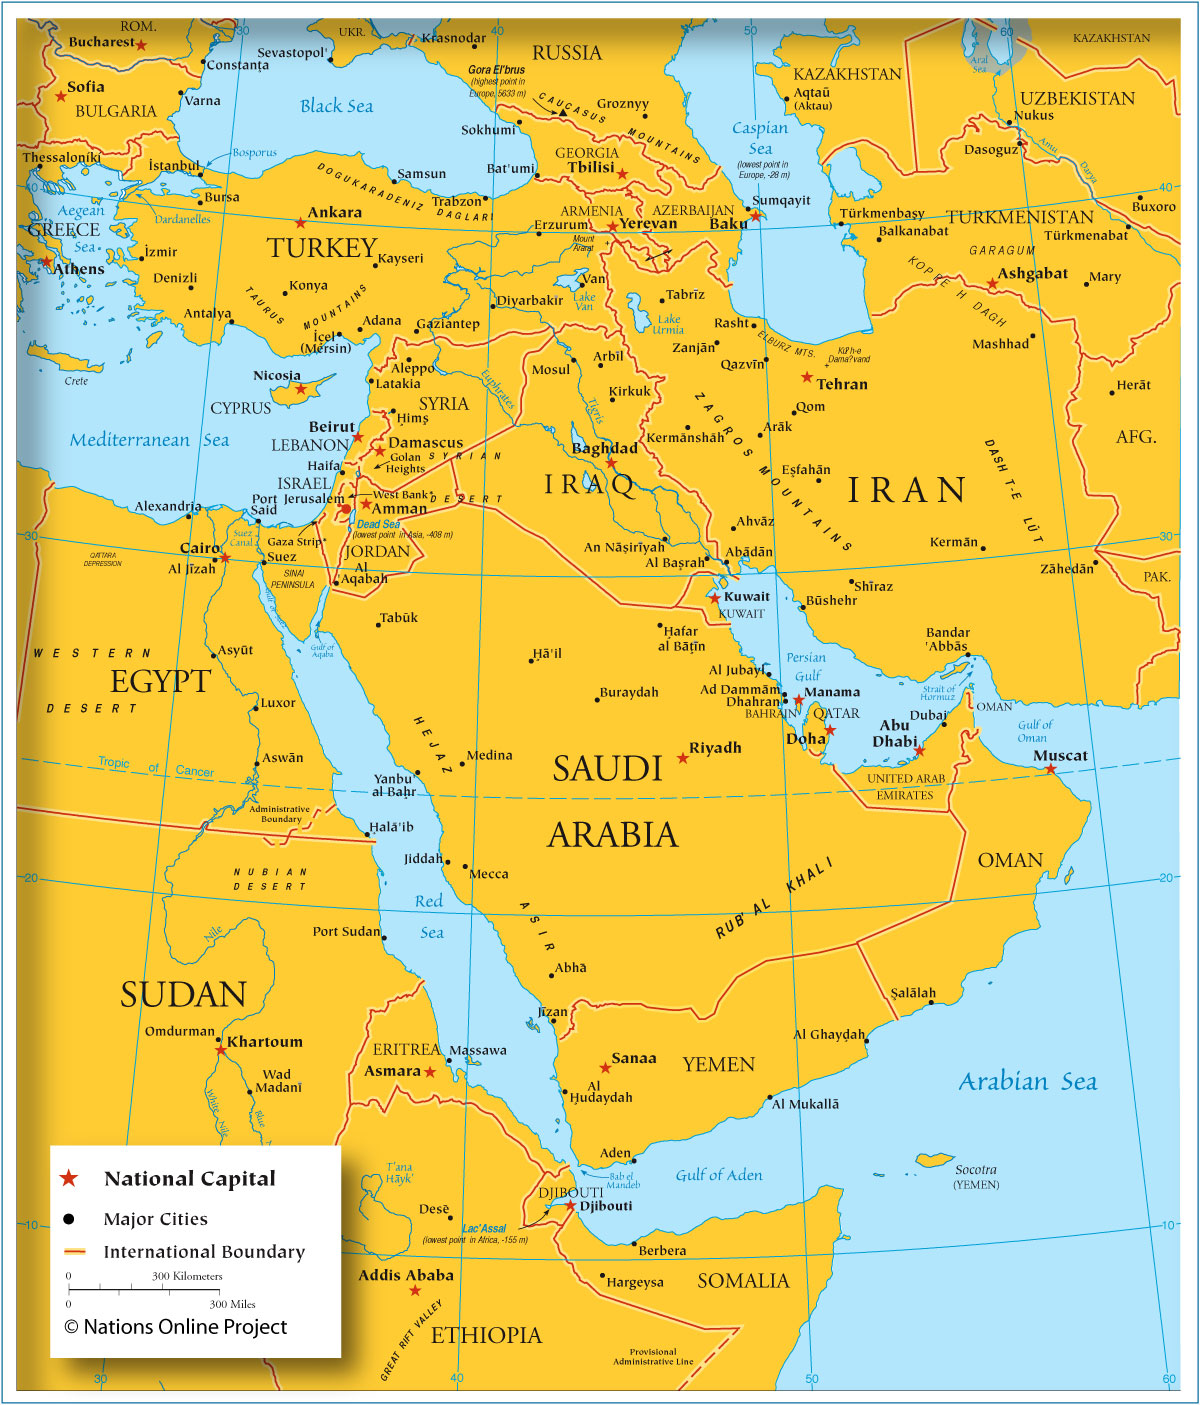 map of western asia and the middle east with countries